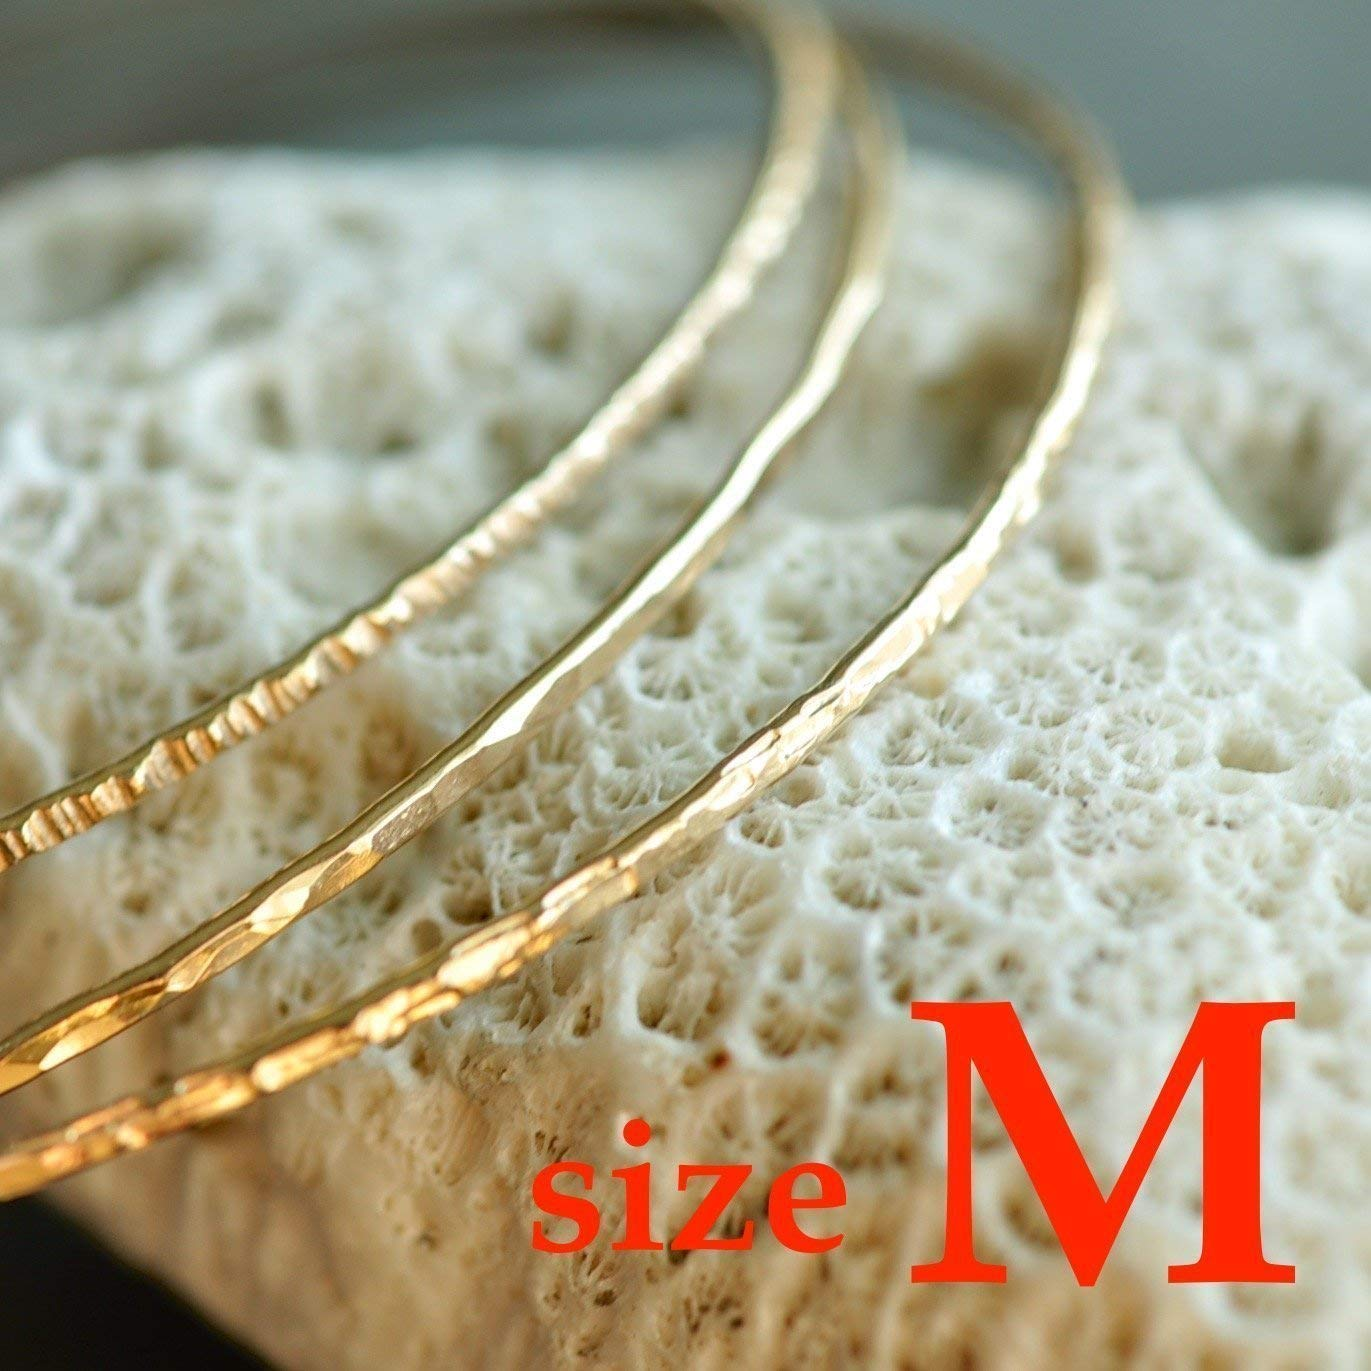 14k gold filled hammered skinny Stacking Bangles set of 3 textures, sz MEDIUM 715K7EHpj8L._SL1371_